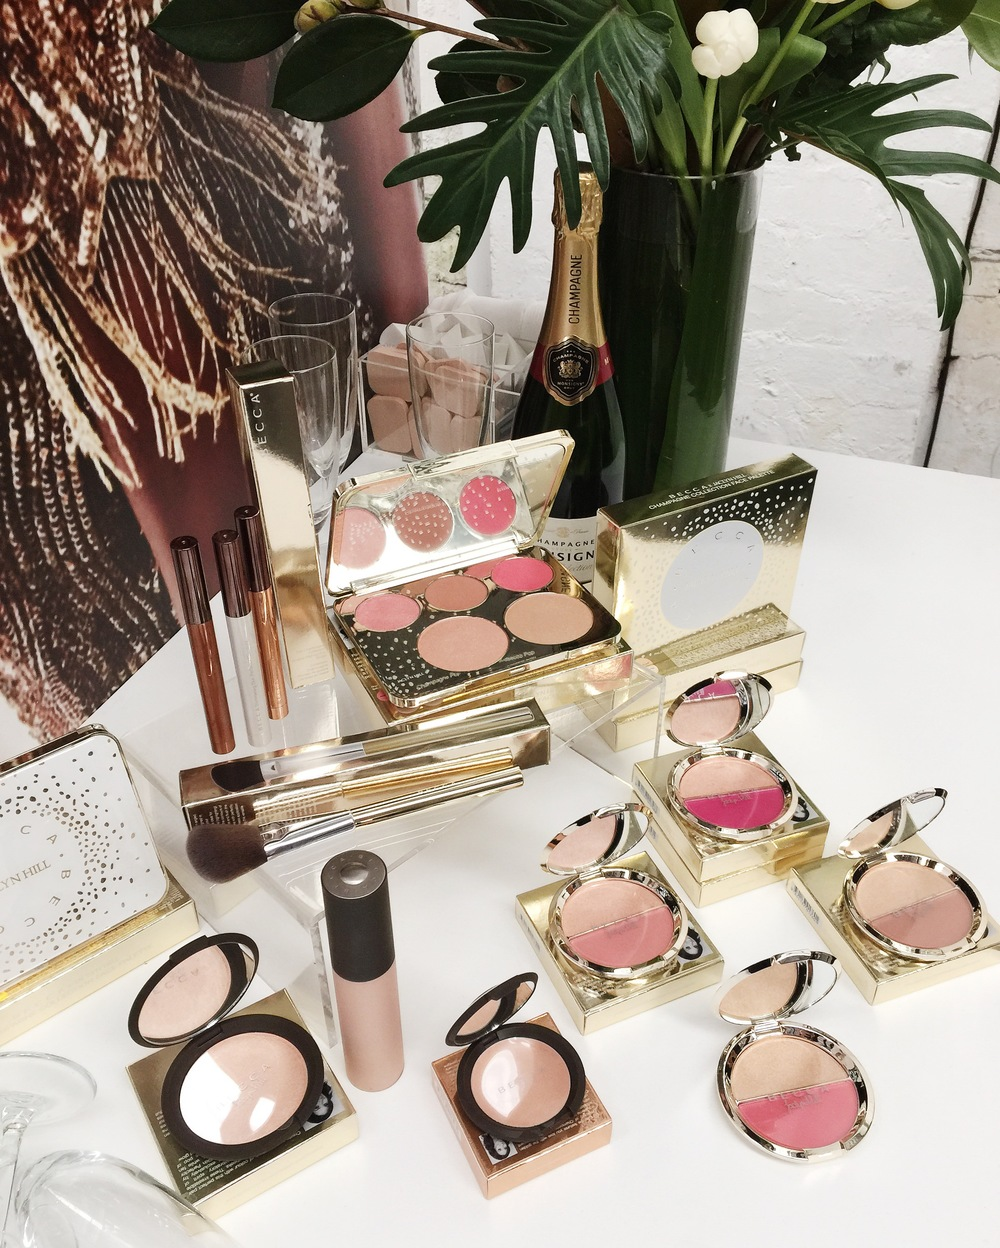 Marisa Robinson Makeup Artist Sephora Showcase Becca Cosmetics Champagne Glow Jaclyn Hill